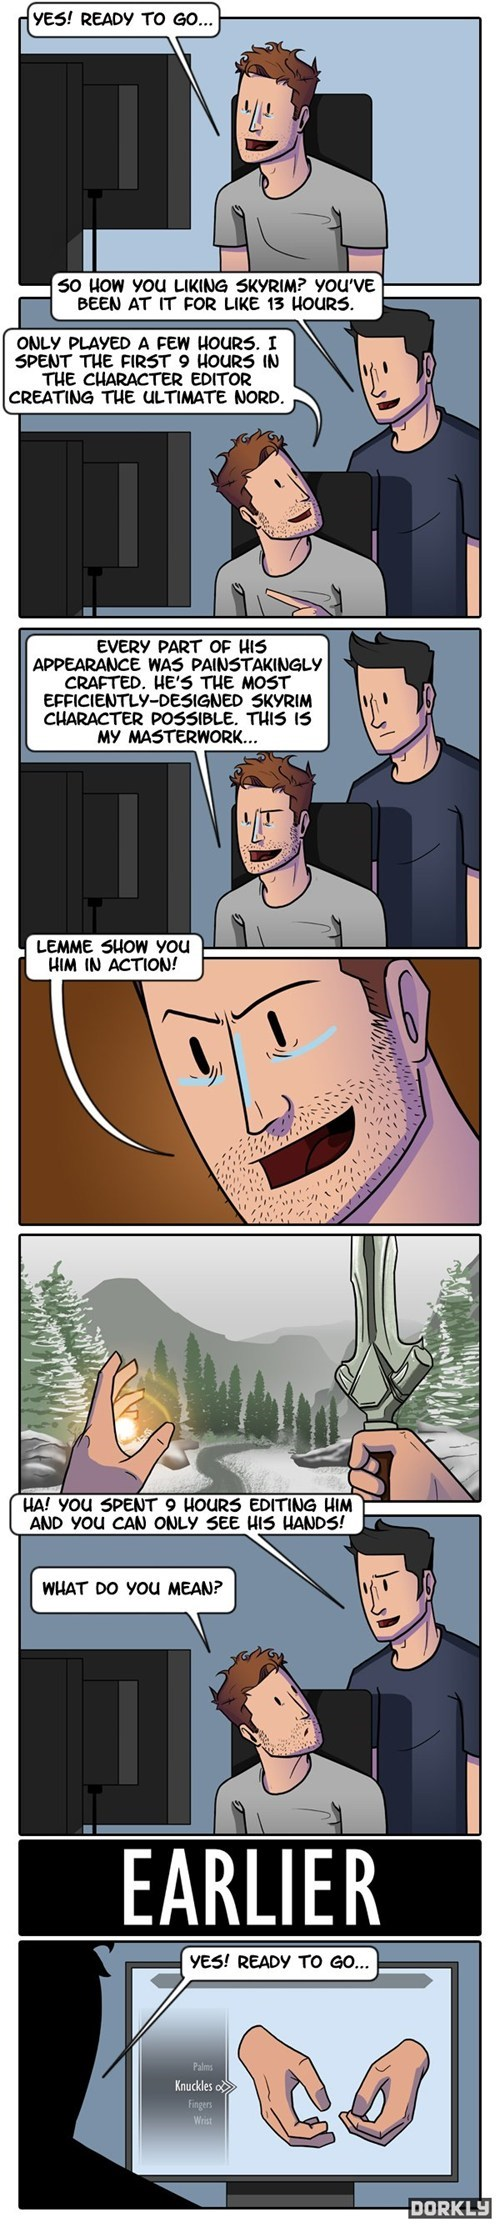 dorkly character creation video games Skyrim funny - 7456161024